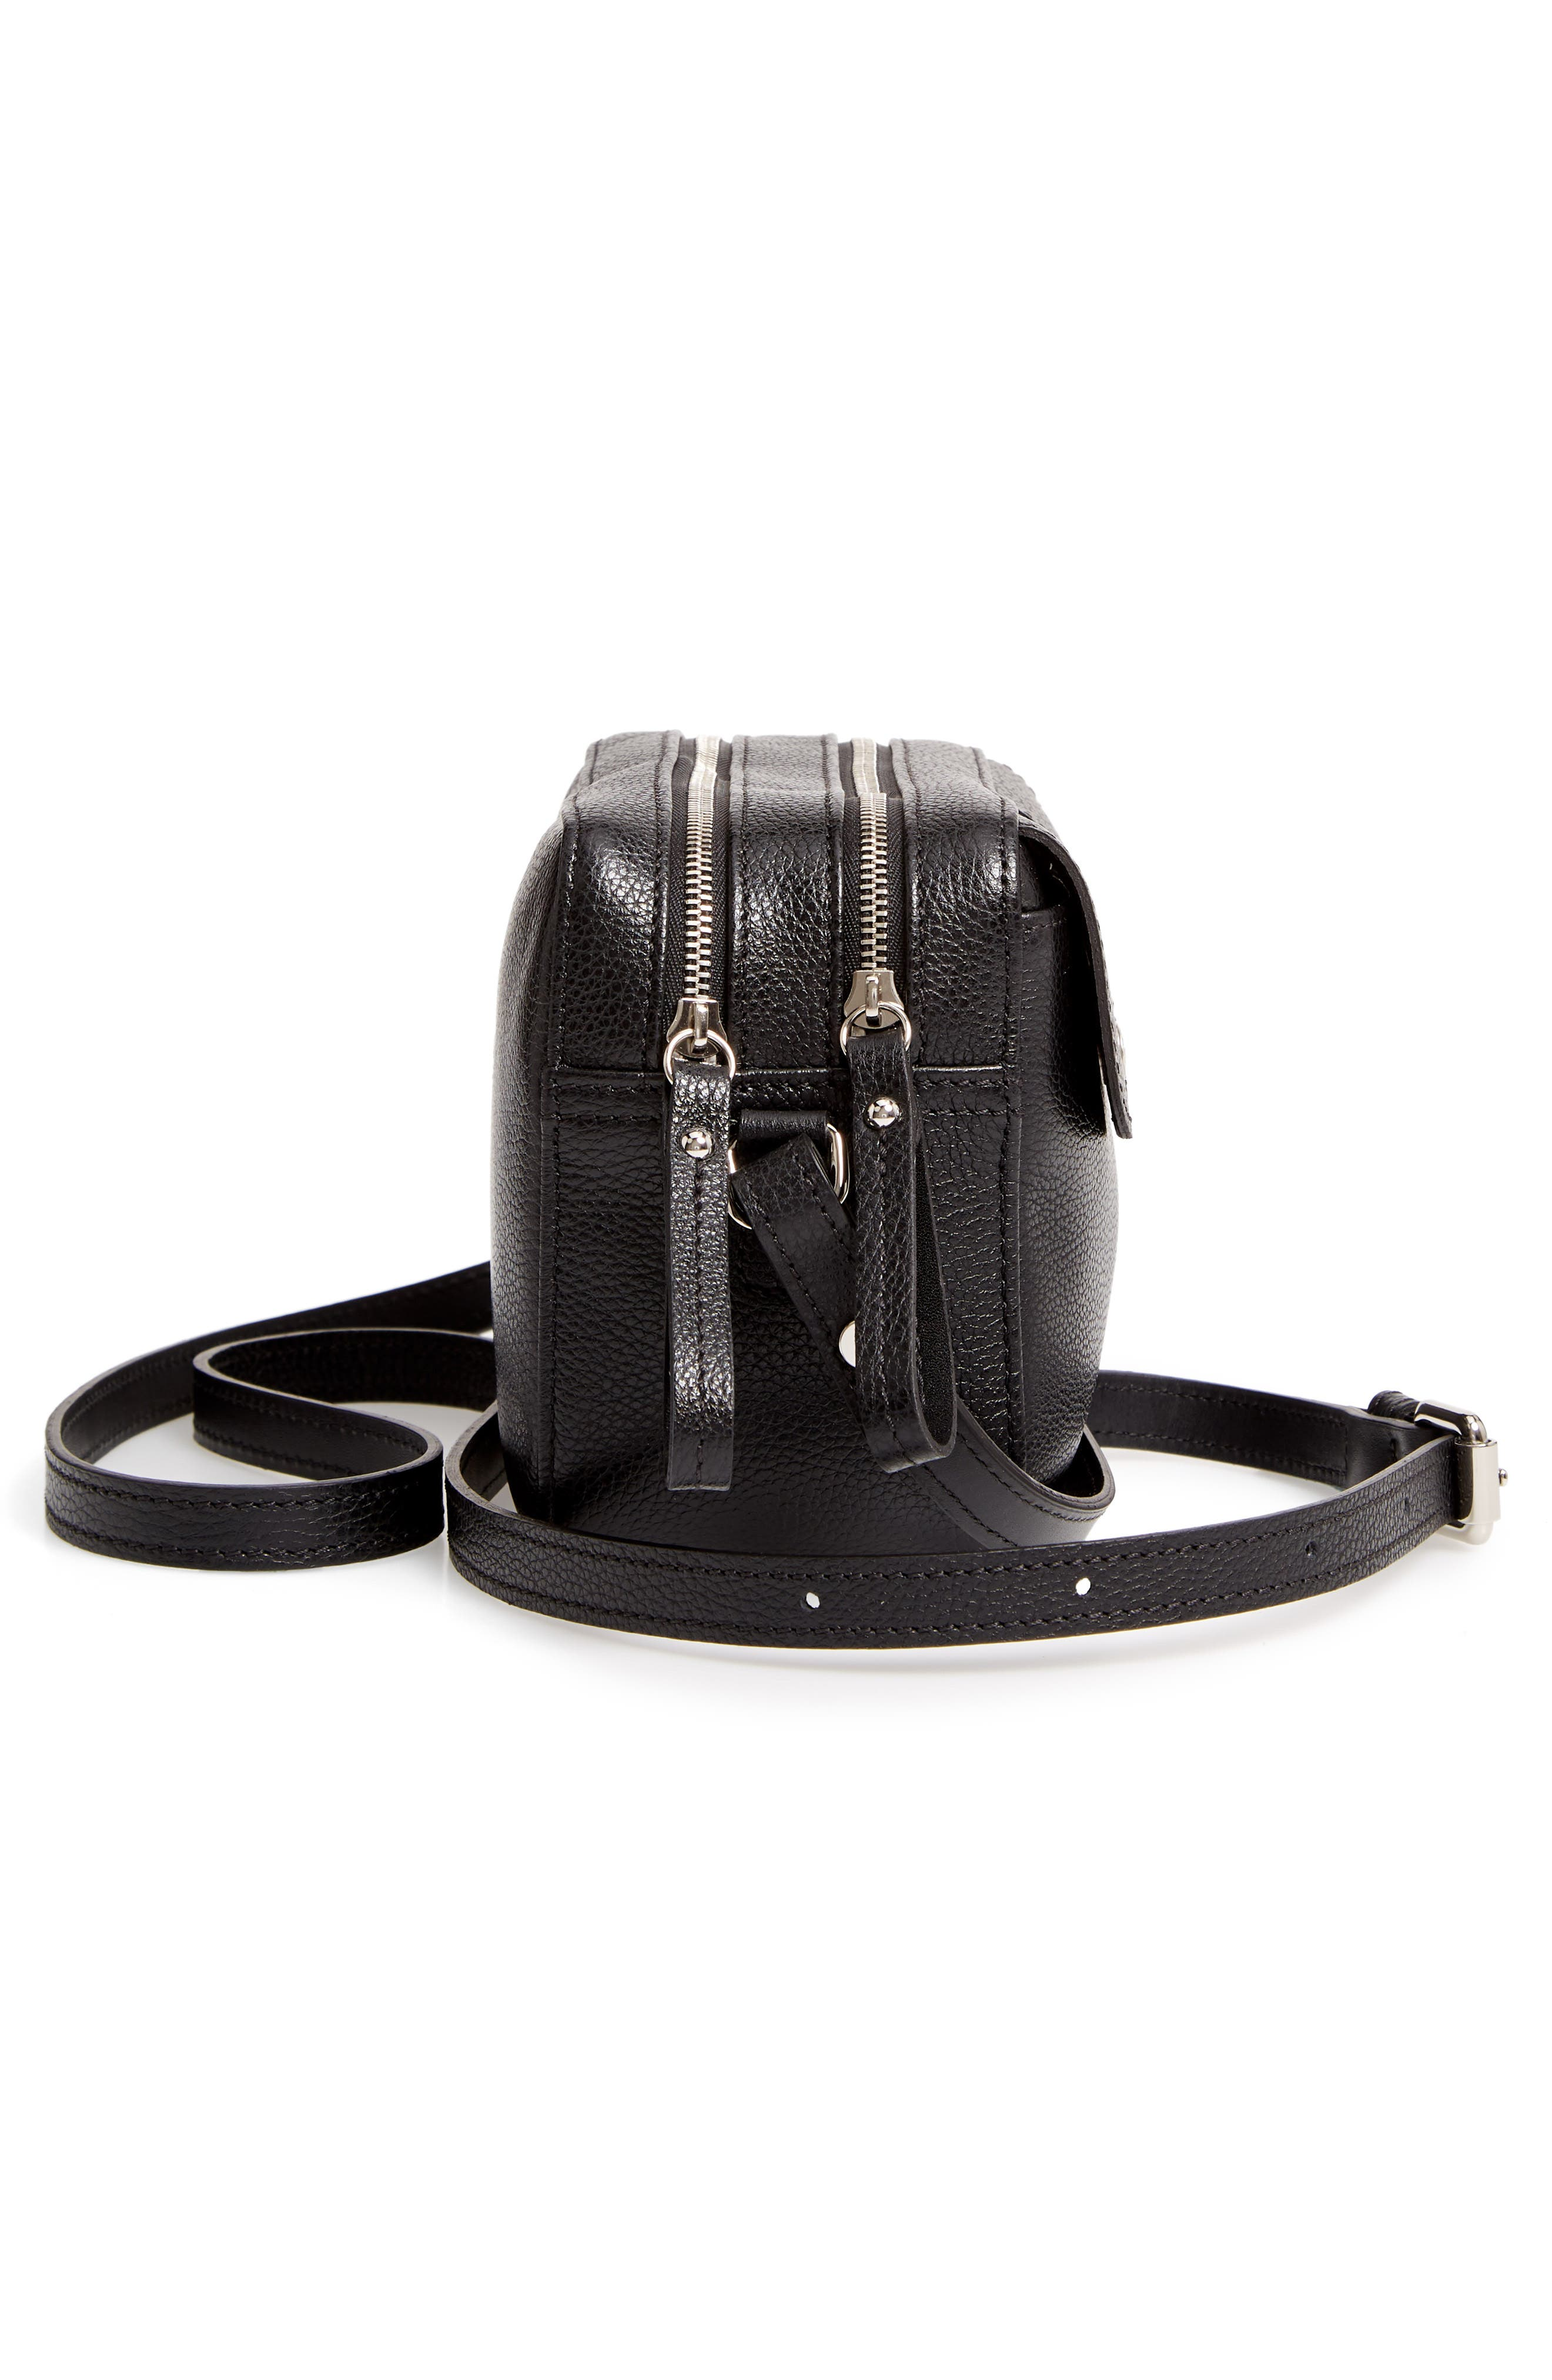 Le Foulonné Leather Camera Bag,                             Alternate thumbnail 5, color,                             BLACK